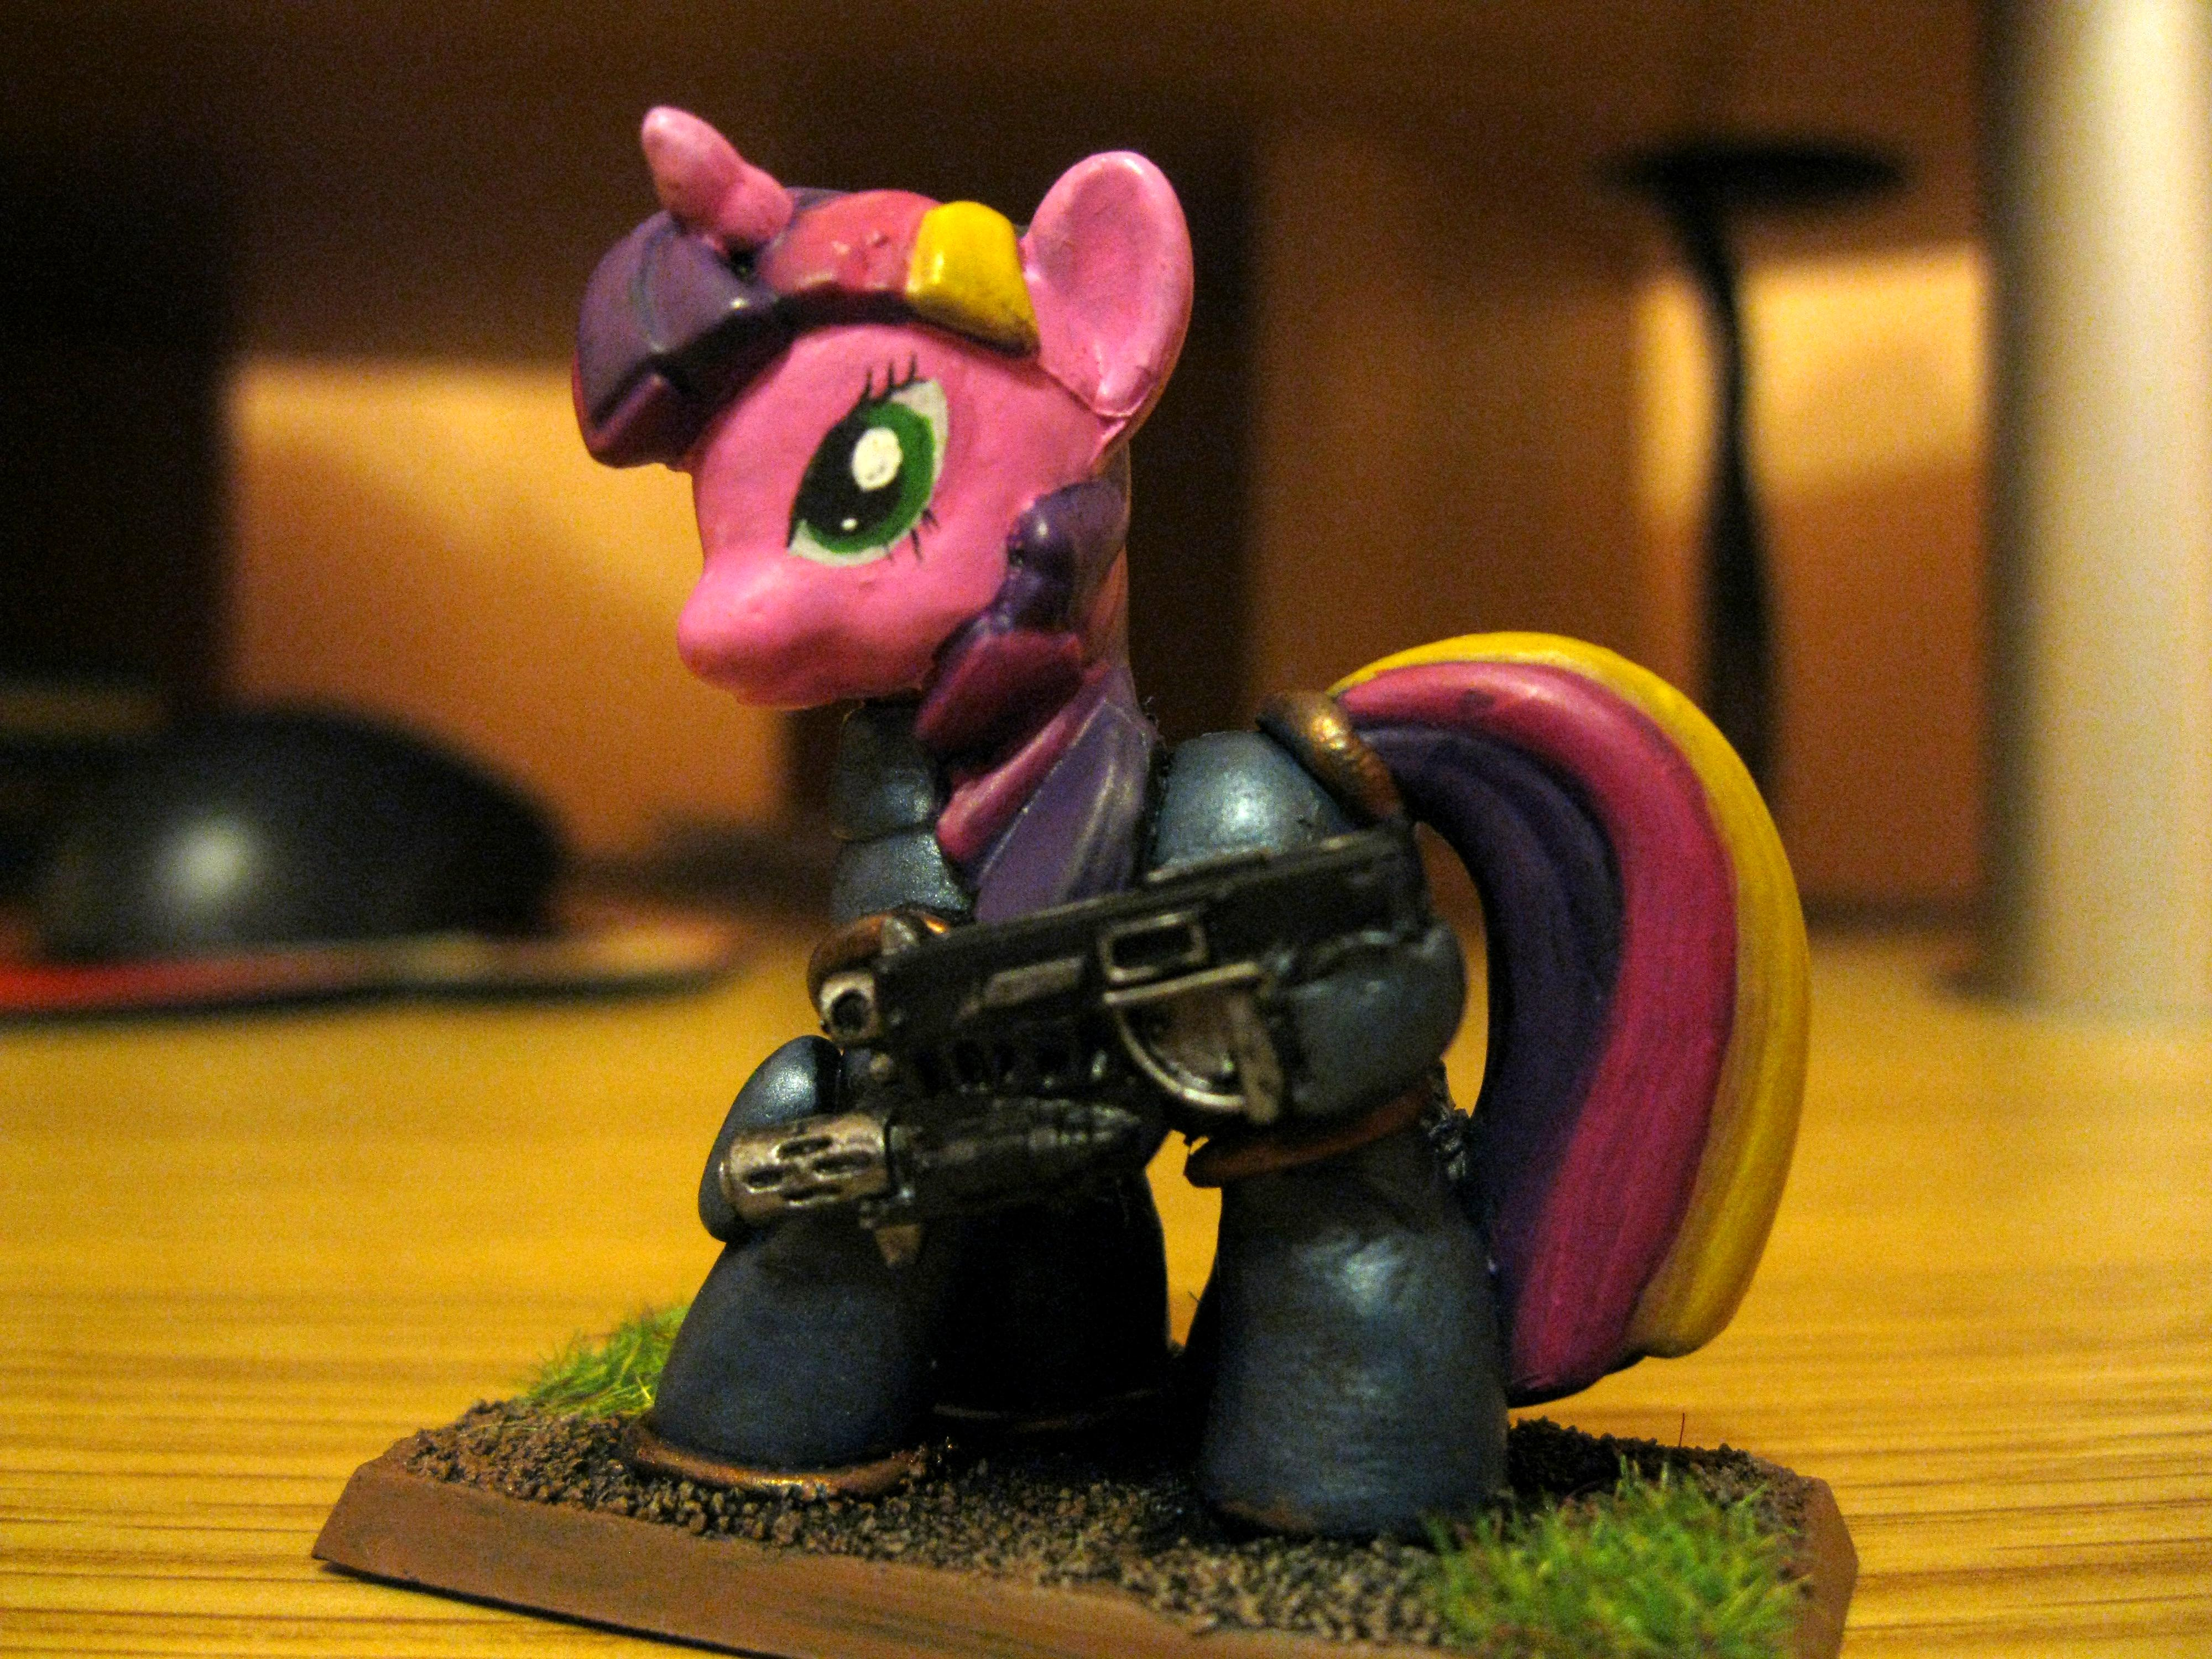 Combibolter, Cute, Humor, My Little Pony, Space Marines, Stupid